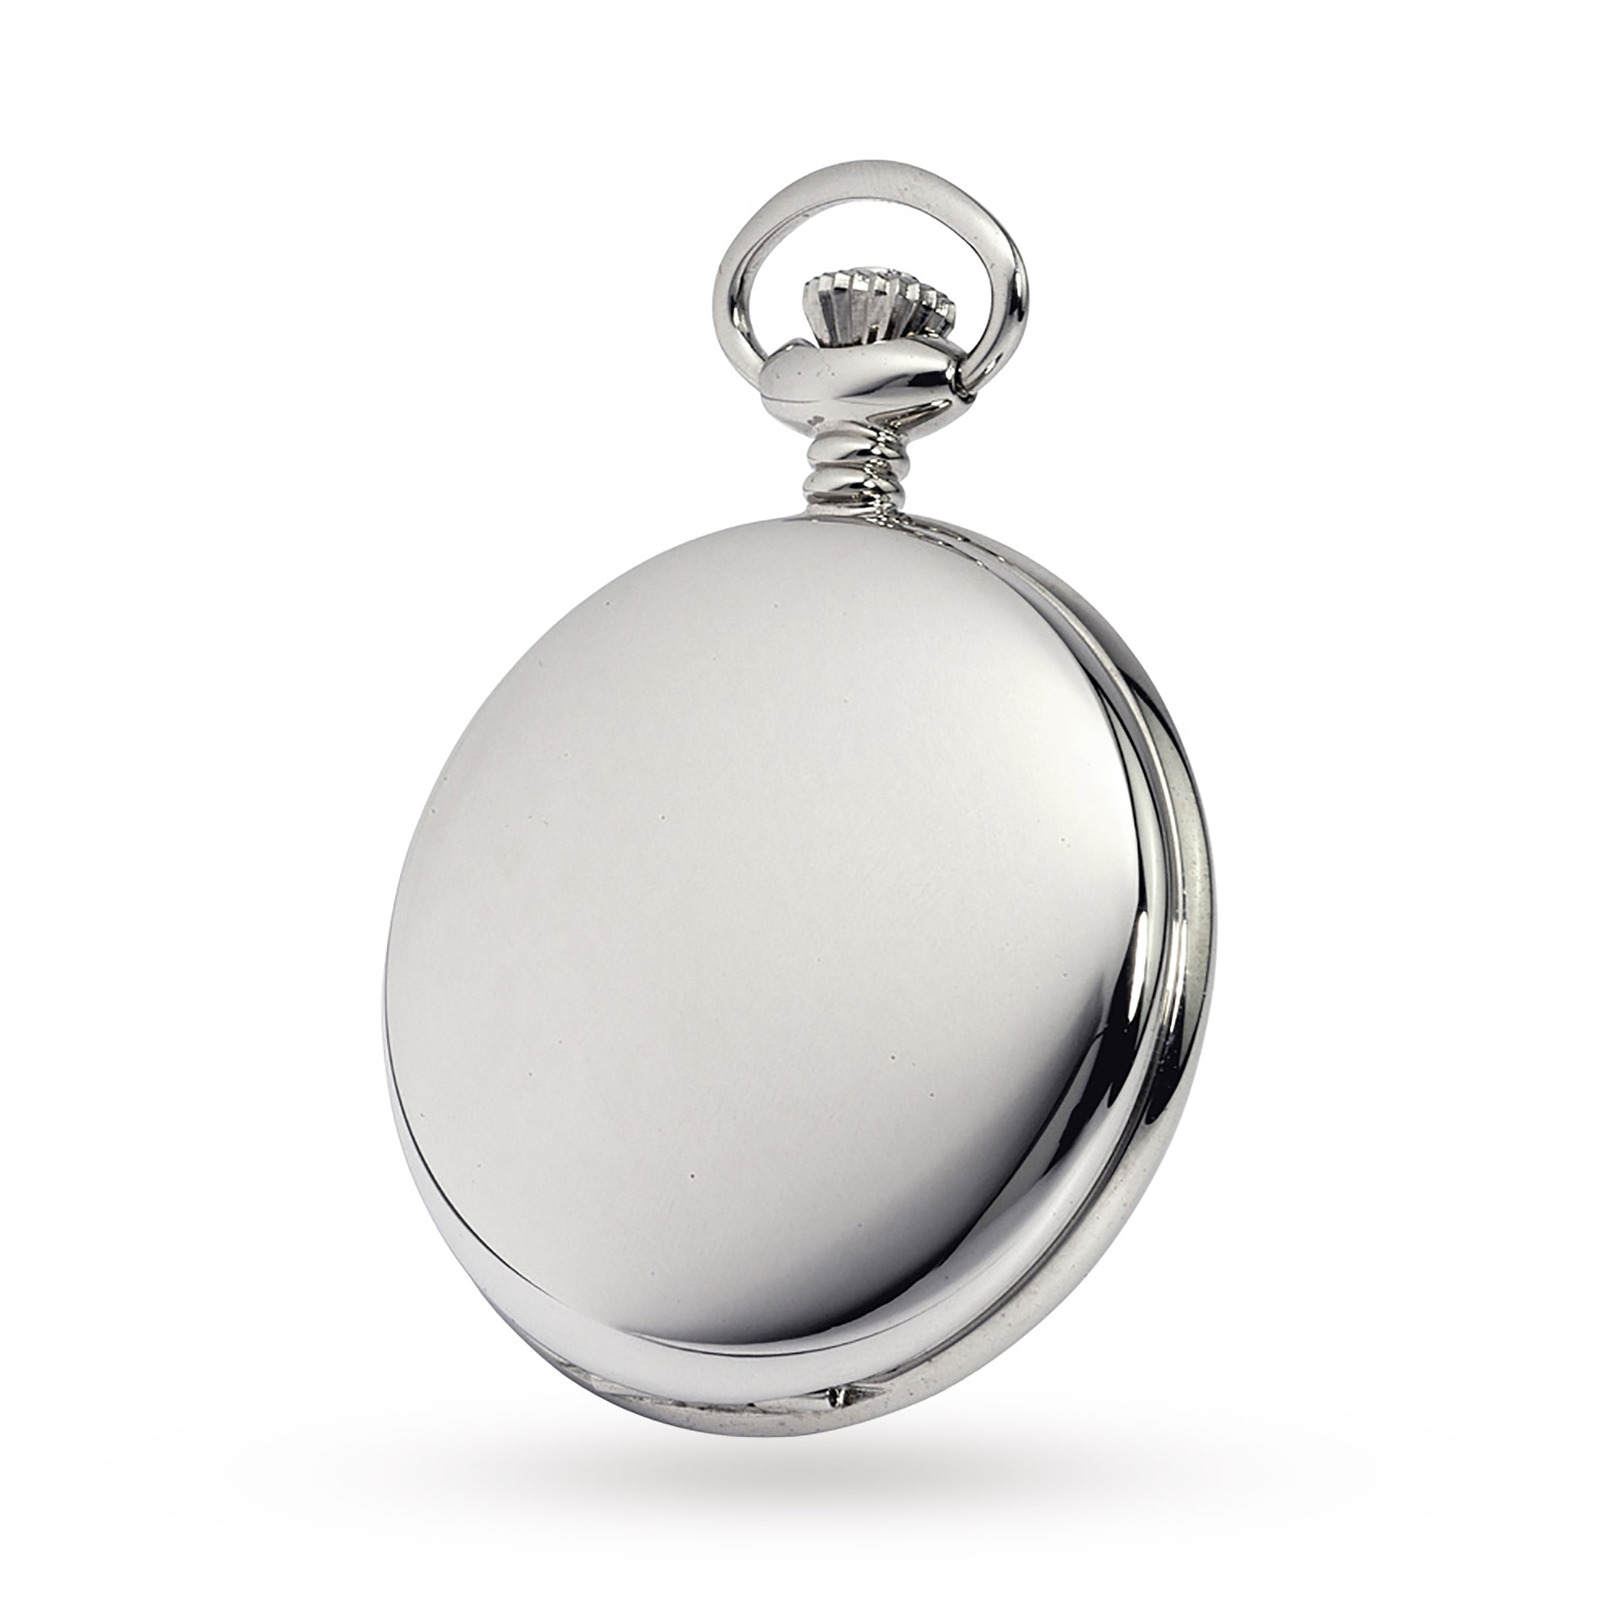 Woodford Full Hunter Pocket Watch